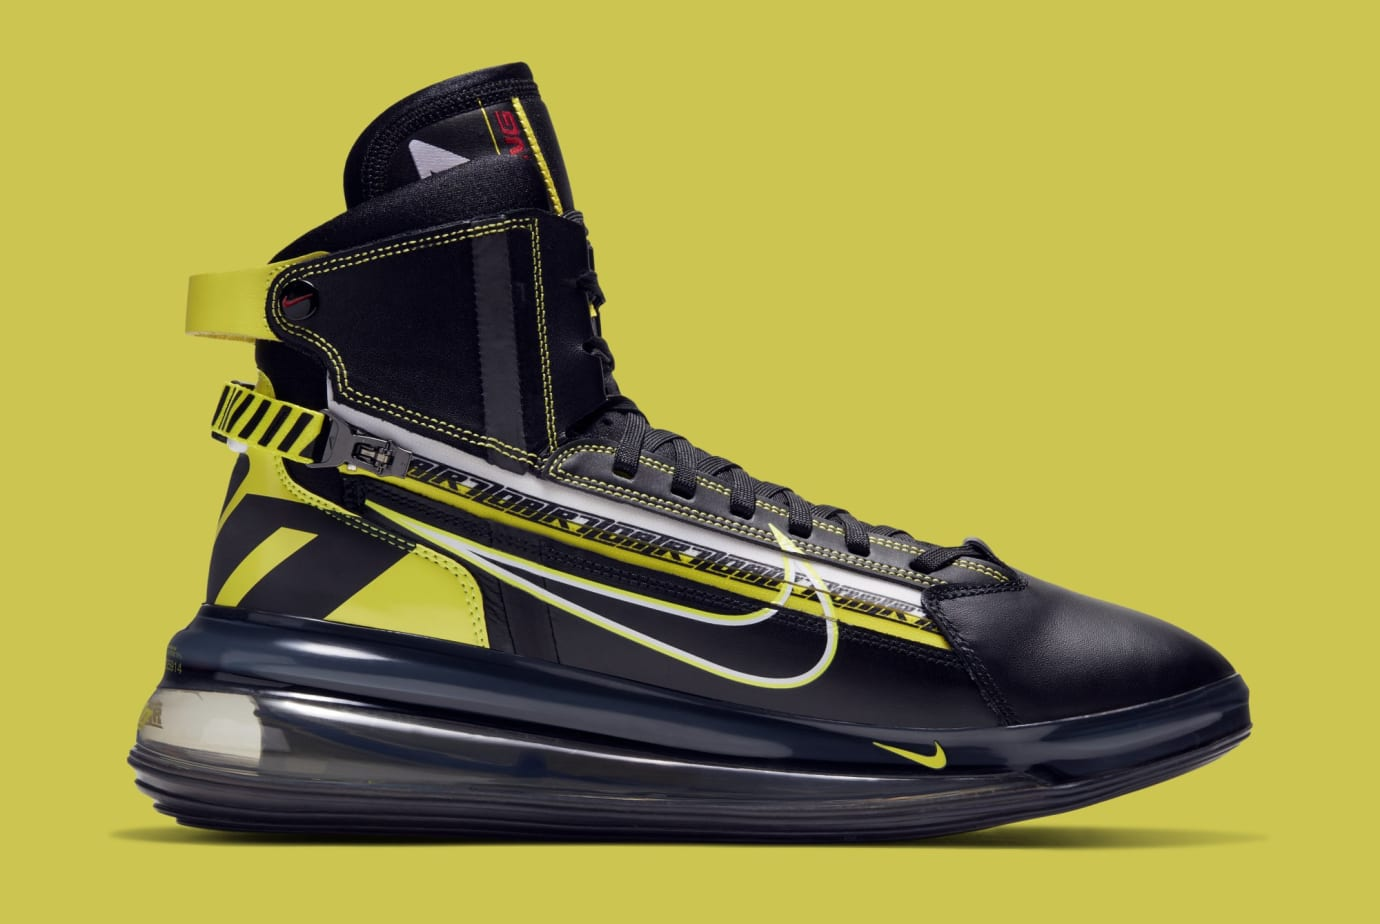 91bc26e76b3e Image via Nike Nike Air Max 720 Saturn  Black Dynamic Yellow-University  Red  BV7786-